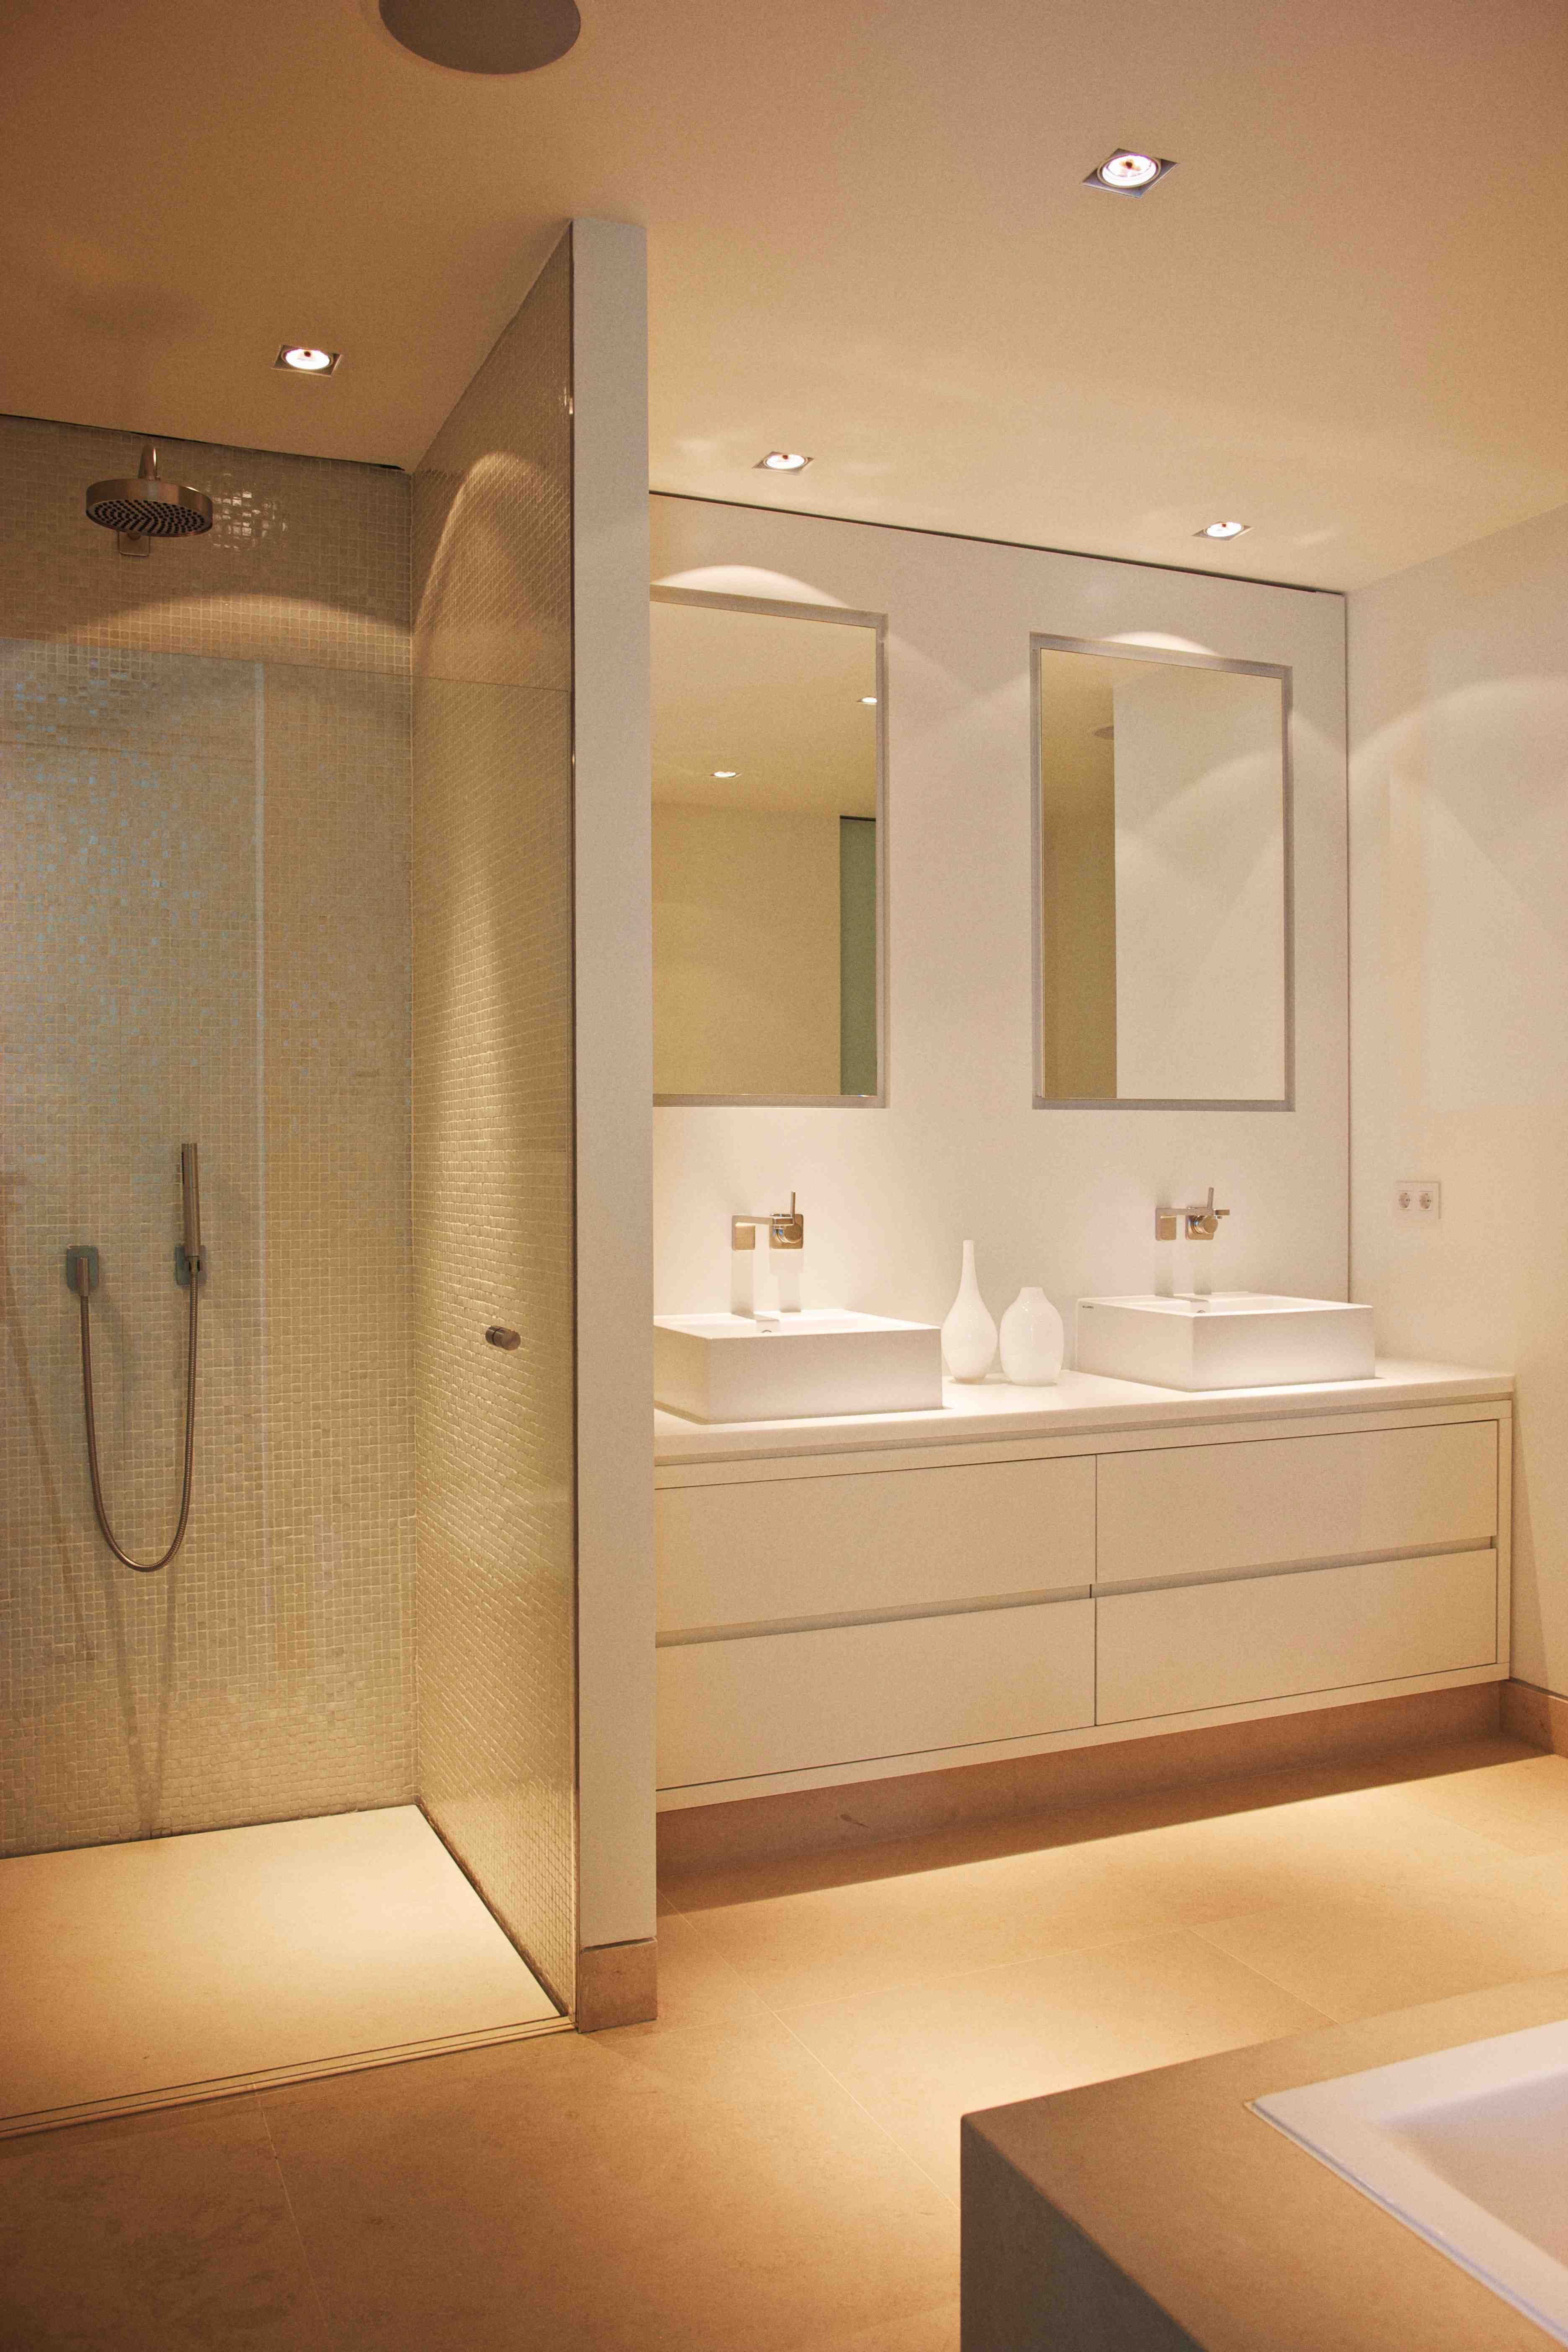 low basement bathroom adding ceiling ideas tim functionality blog wohlforth